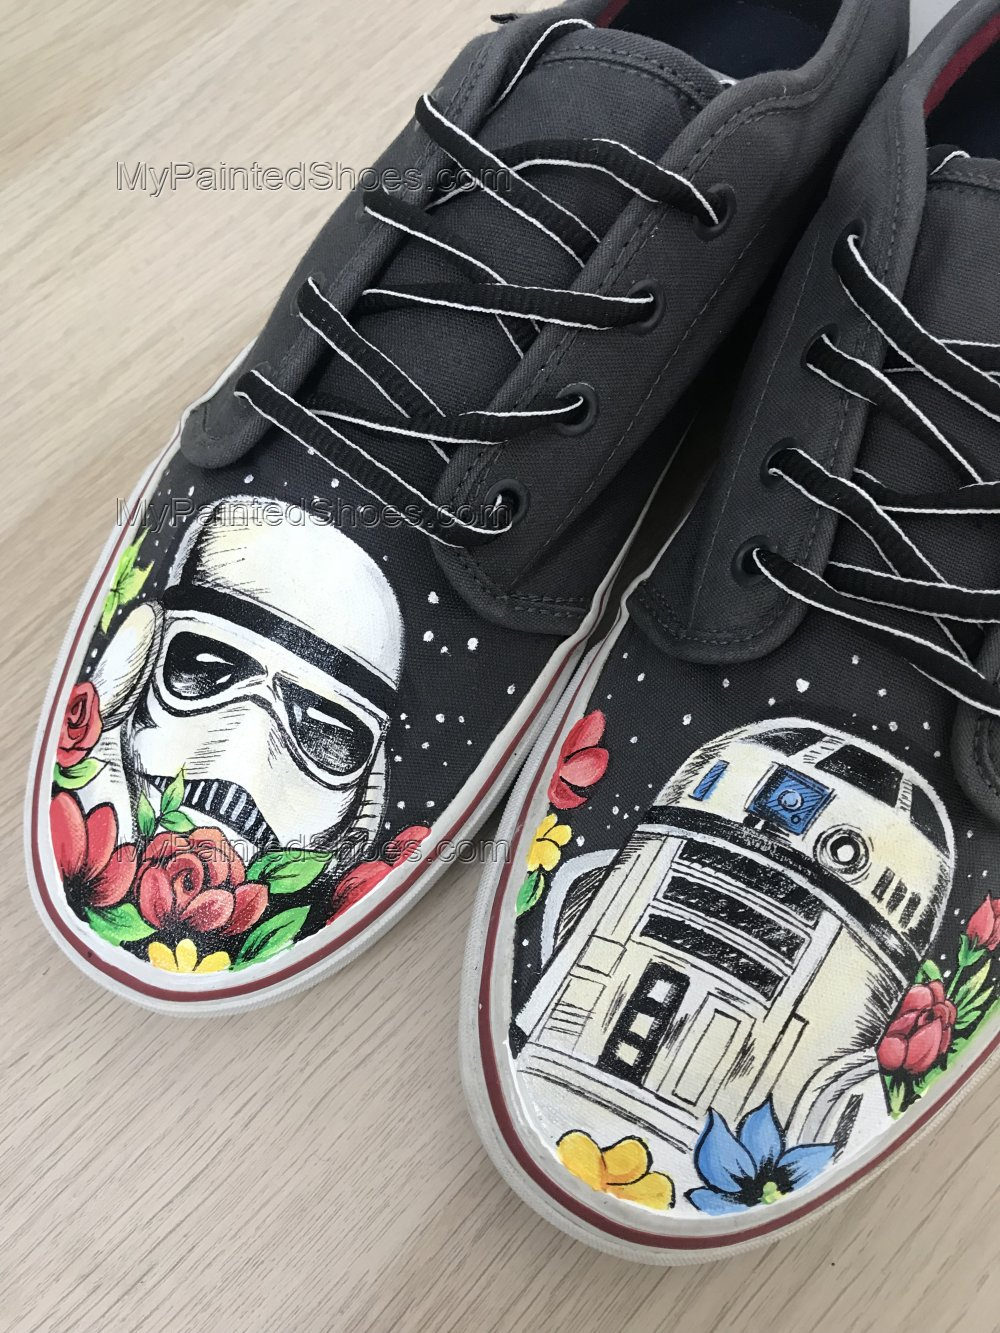 Custom Painted Star Wars Inspired Vans Custom Painted Shoes-3